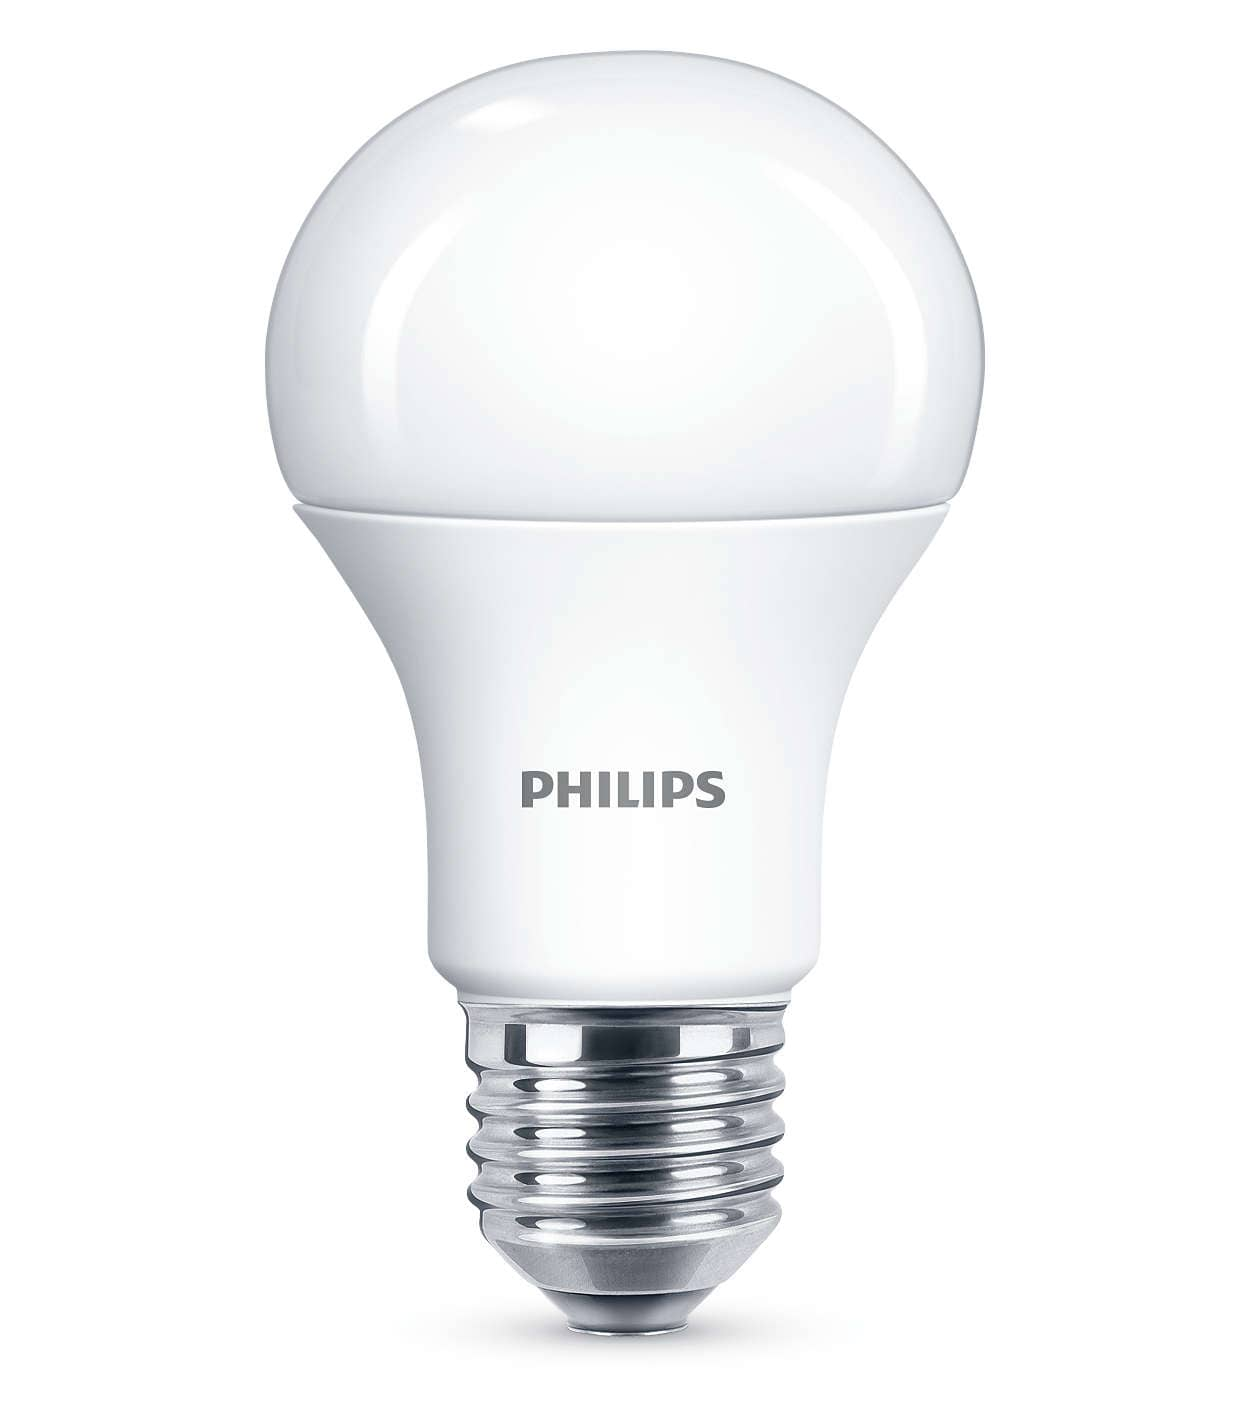 philips e27 led lampe 13w 1521lm neutralweiss 4000k 100w. Black Bedroom Furniture Sets. Home Design Ideas